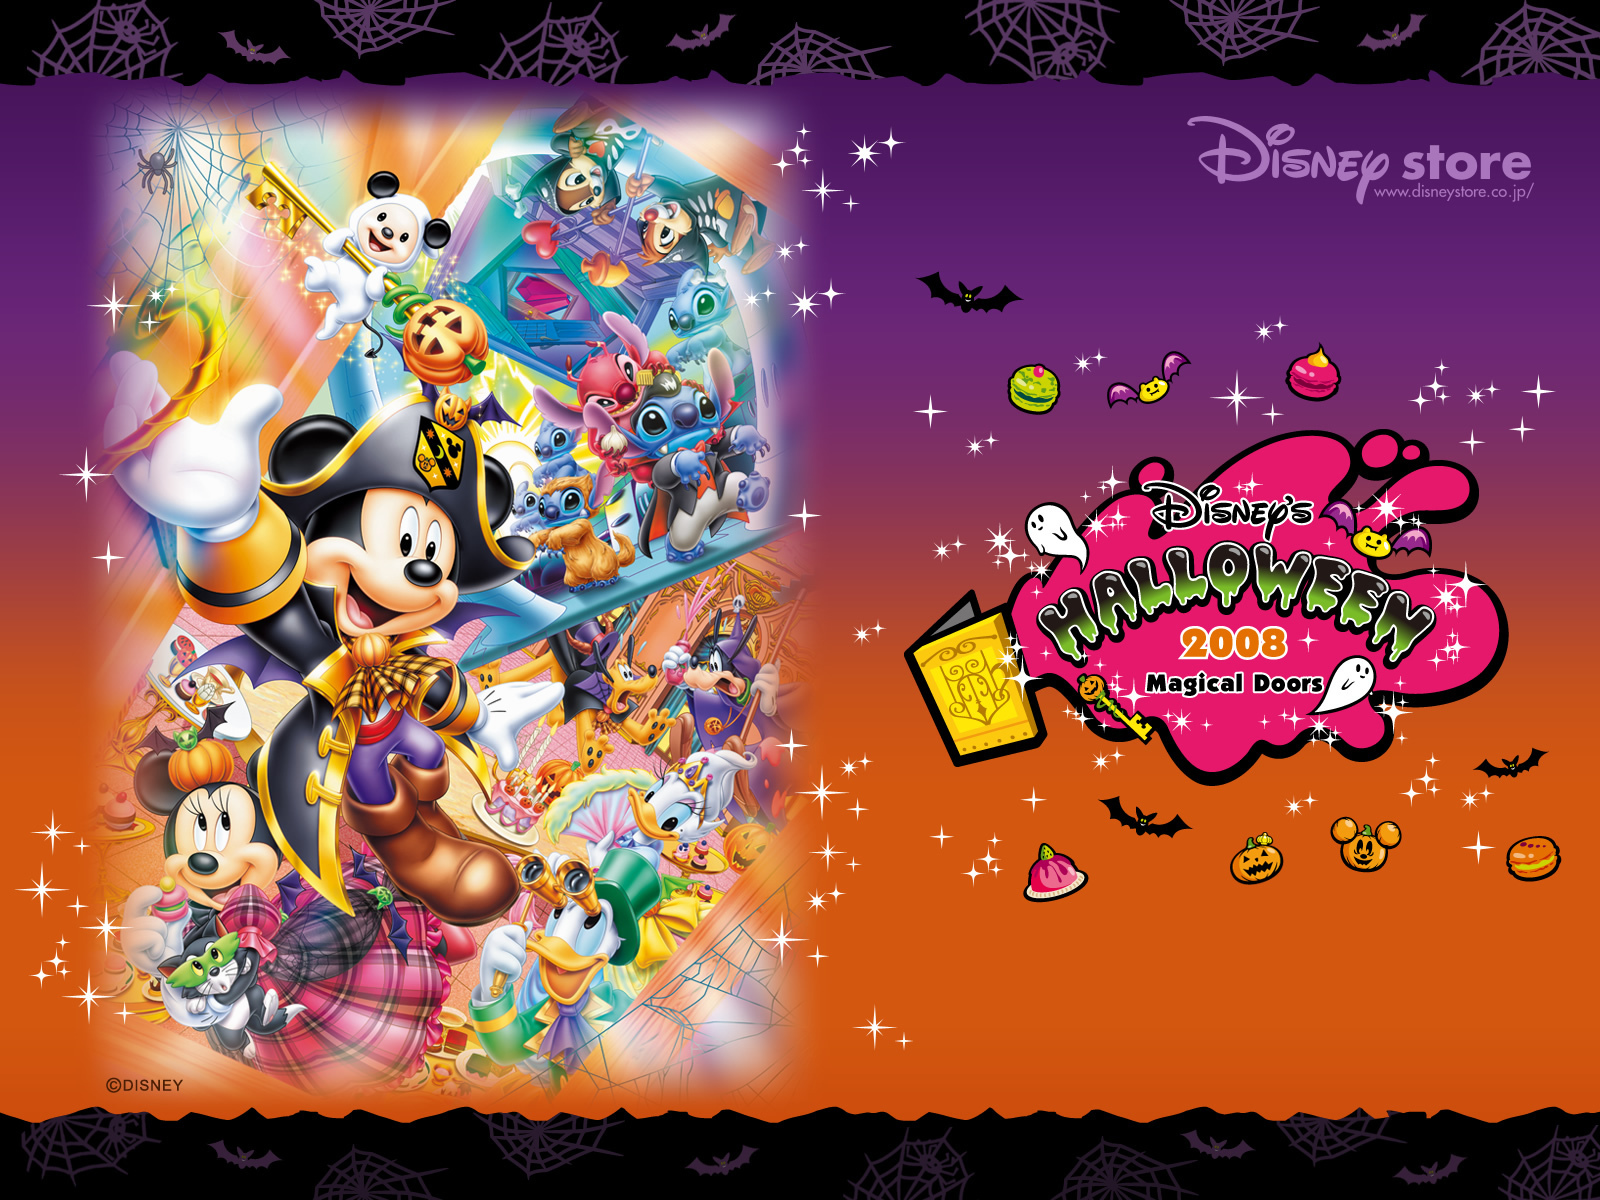 Disney Halloween 2008 Wallpaper - Disney Wallpaper ...